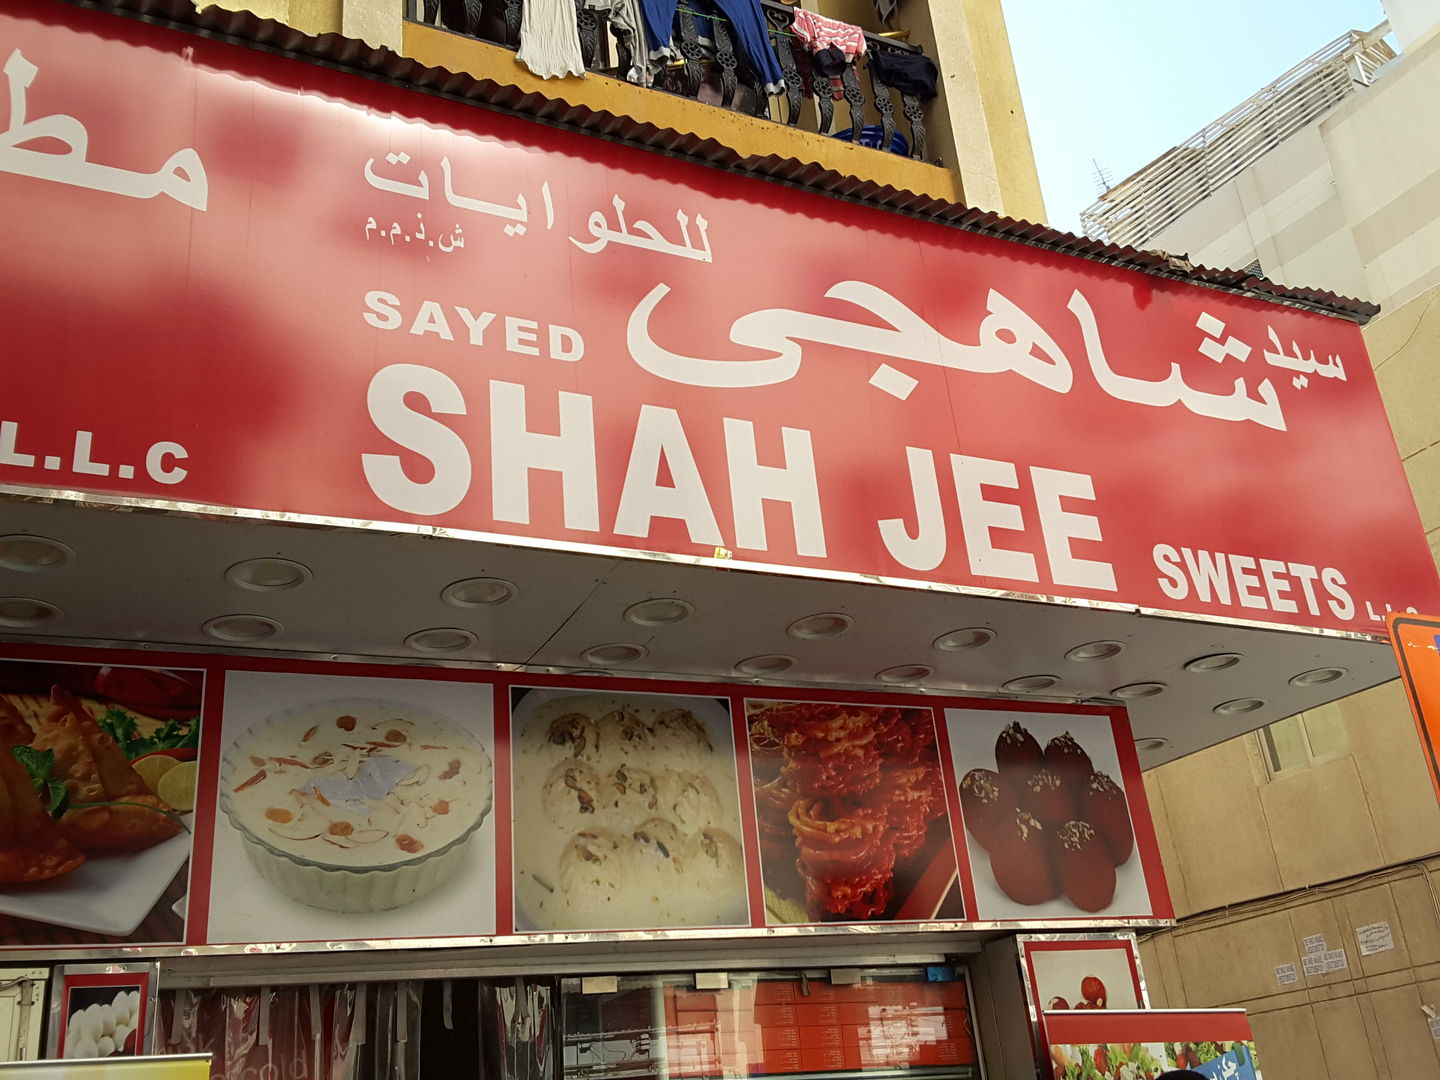 HiDubai-business-sayed-shah-jee-sweets-food-beverage-bakeries-desserts-sweets-al-murar-dubai-2